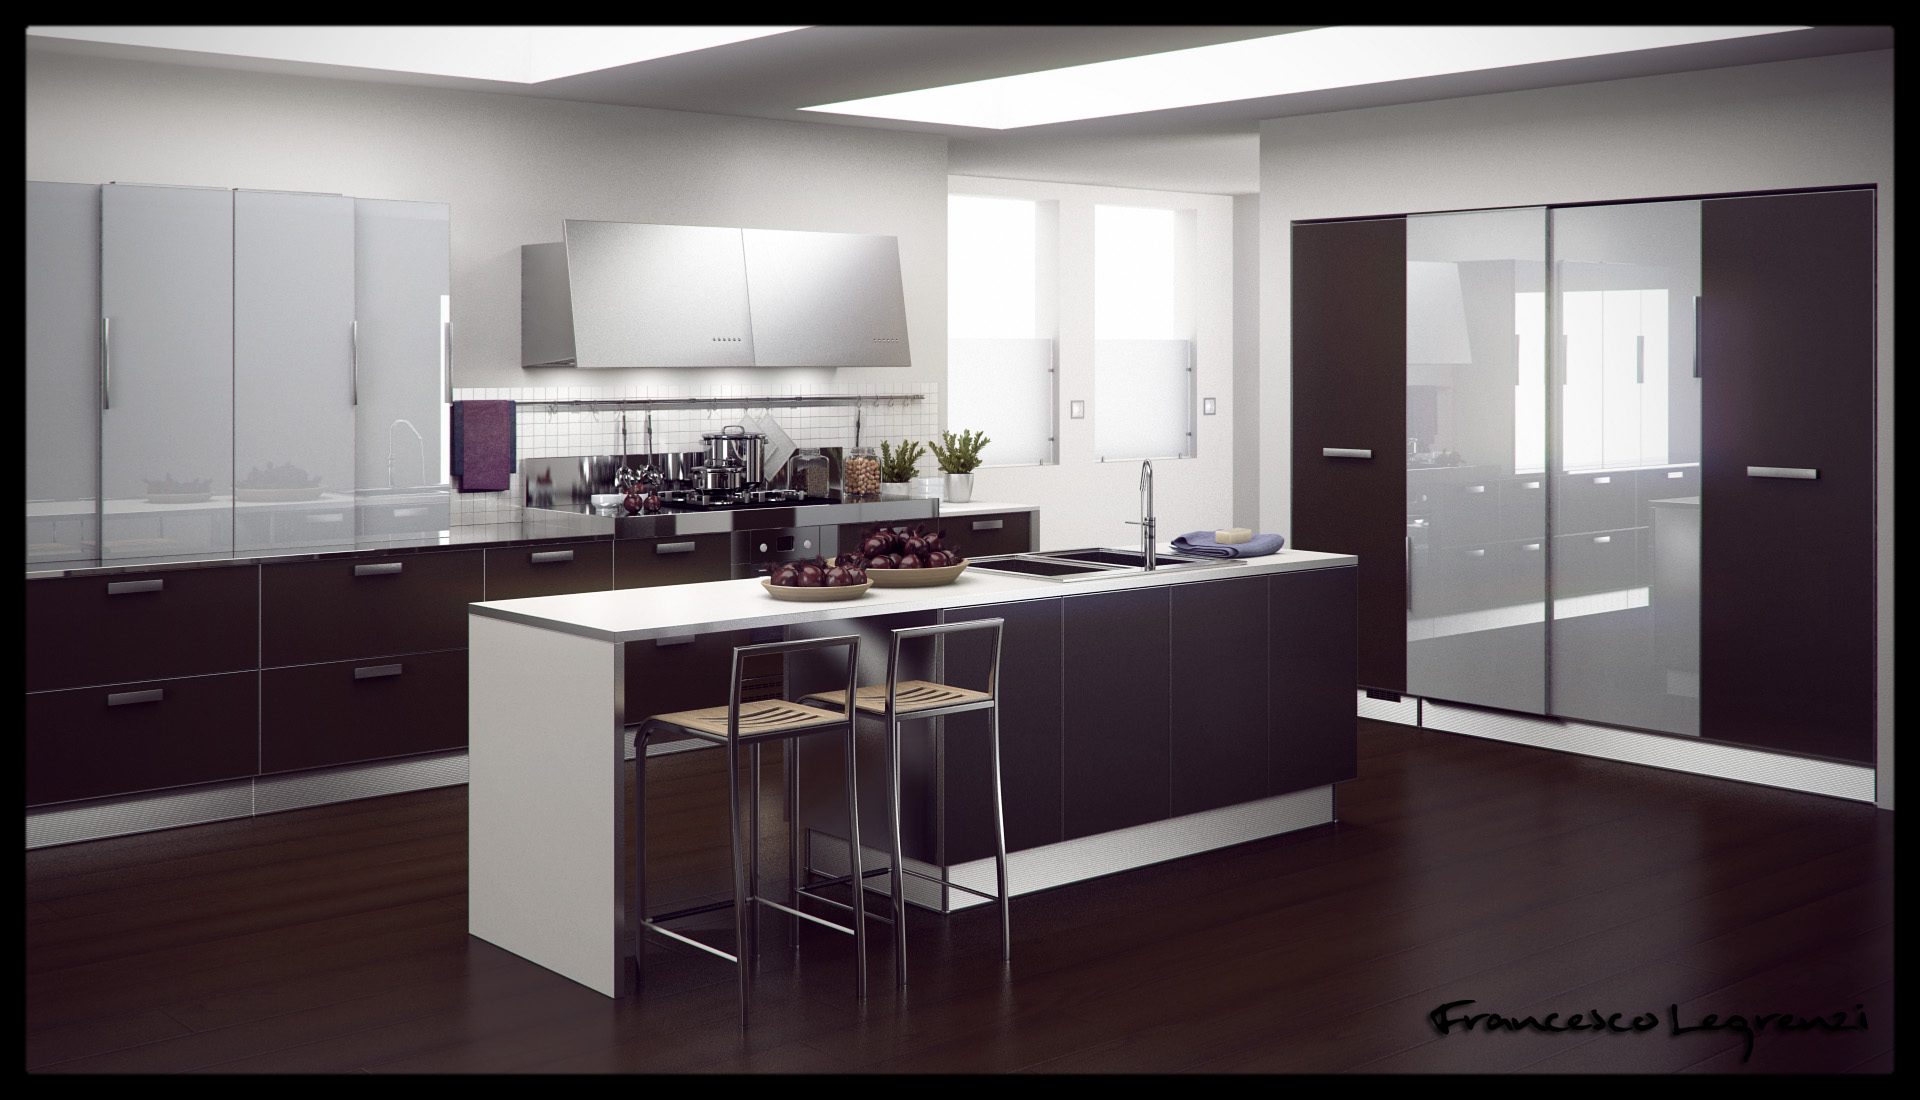 Remarkable Contemporary Modern Kitchen 1920 x 1100 · 332 kB · jpeg